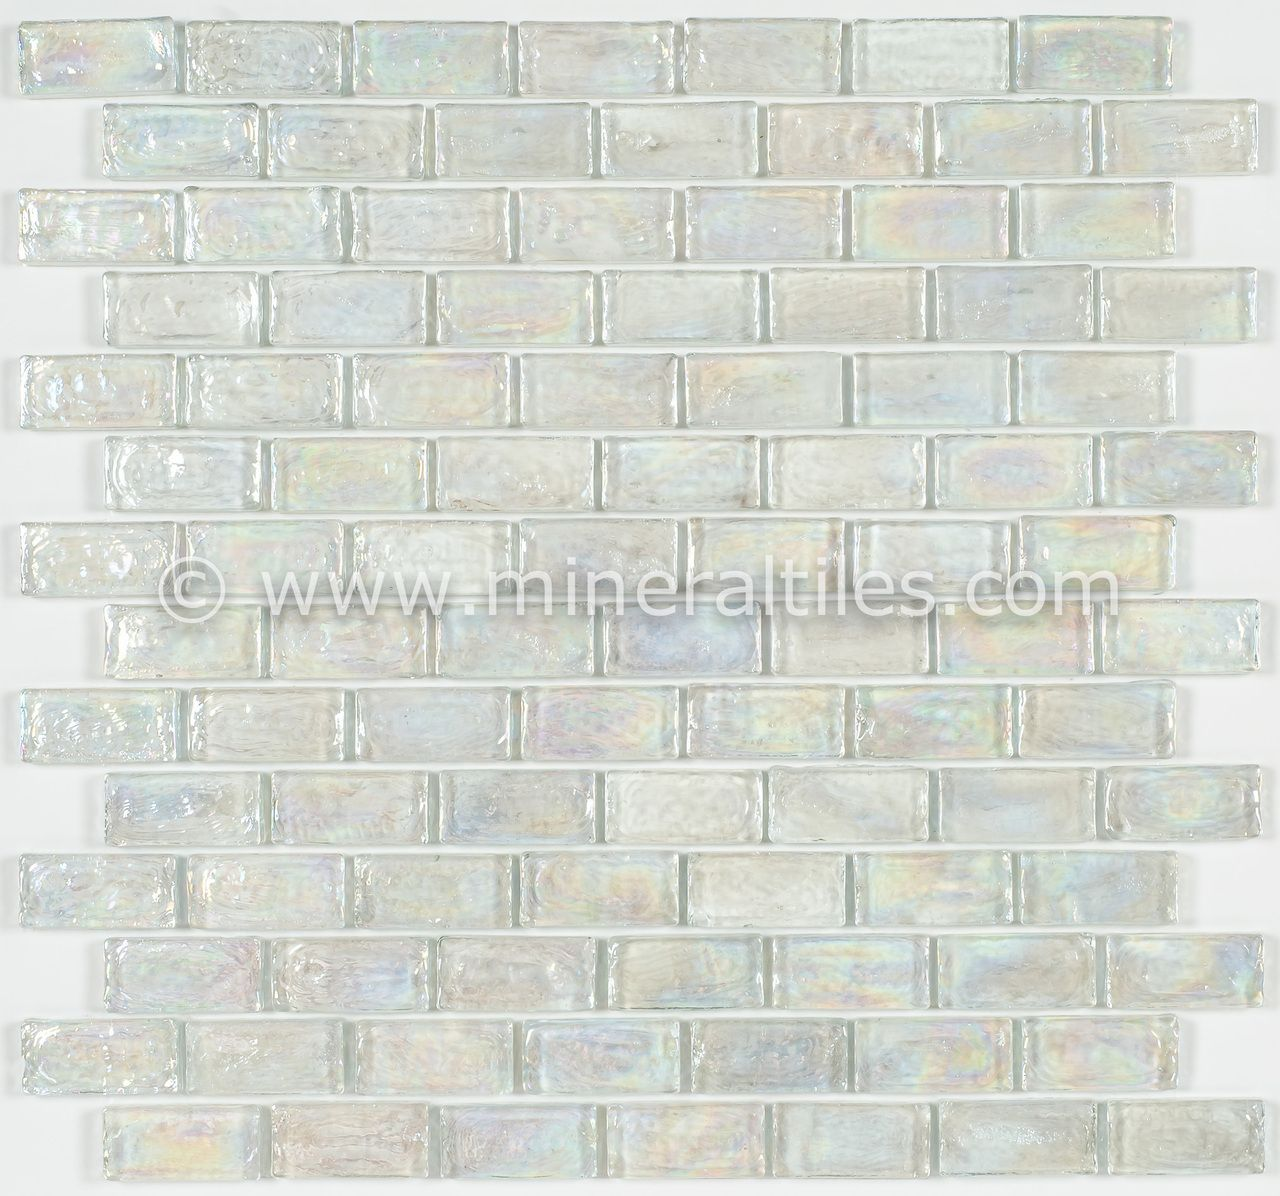 Iridescent Pool Glass Tile Clear 1x2 Iridescent Glass